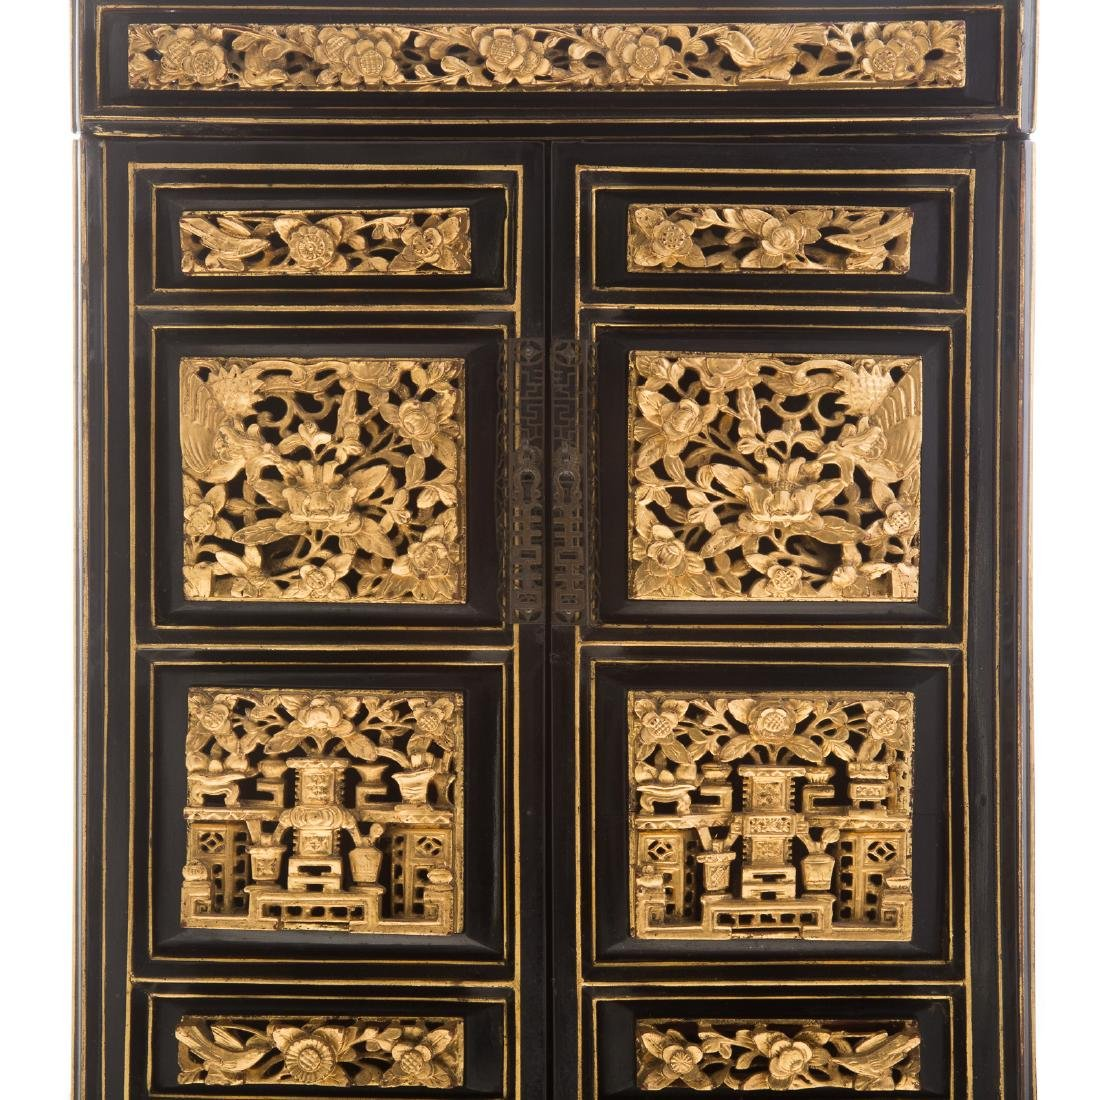 Chinese lacquer and gilt wood shrine - 2